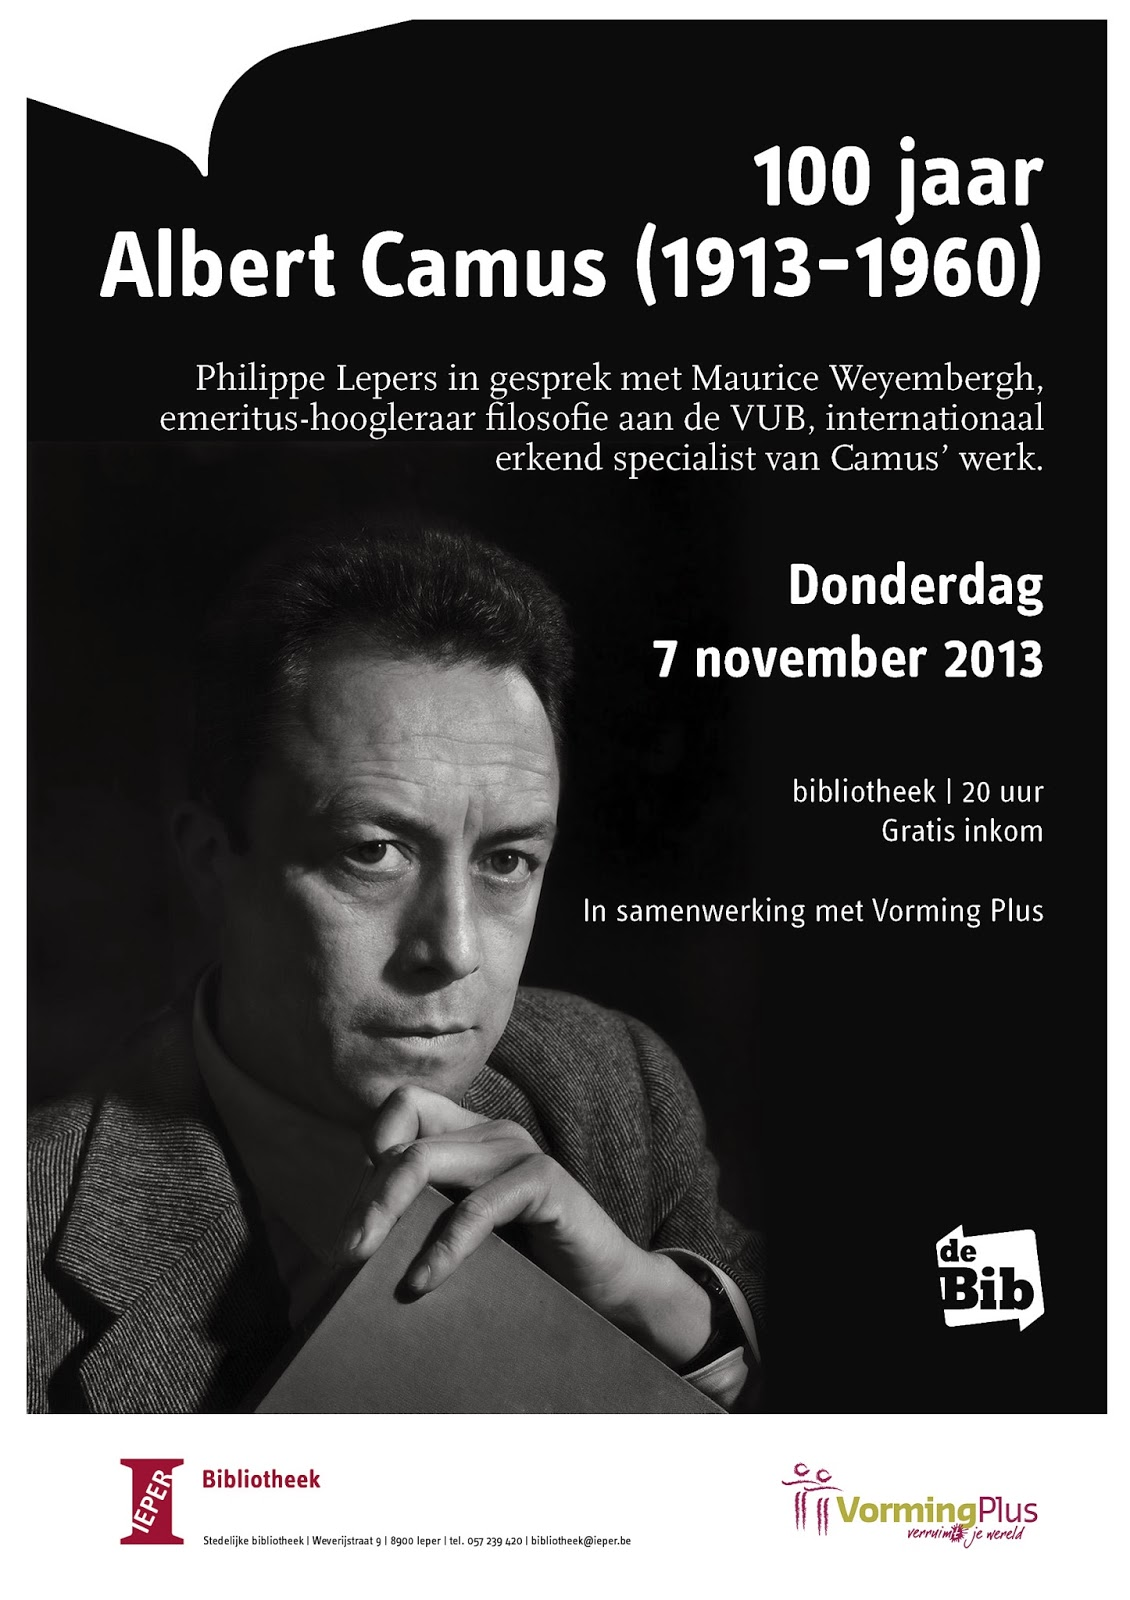 albert camus and the absurd essay A short summary of albert camus's the myth of sisyphus camus opens the essay by asking if this latter conclusion that life is meaningless necessarily leads one to commit suicide living with the absurd, camus suggests, is a matter of facing this fundamental contradiction and maintaining constant awareness of it.